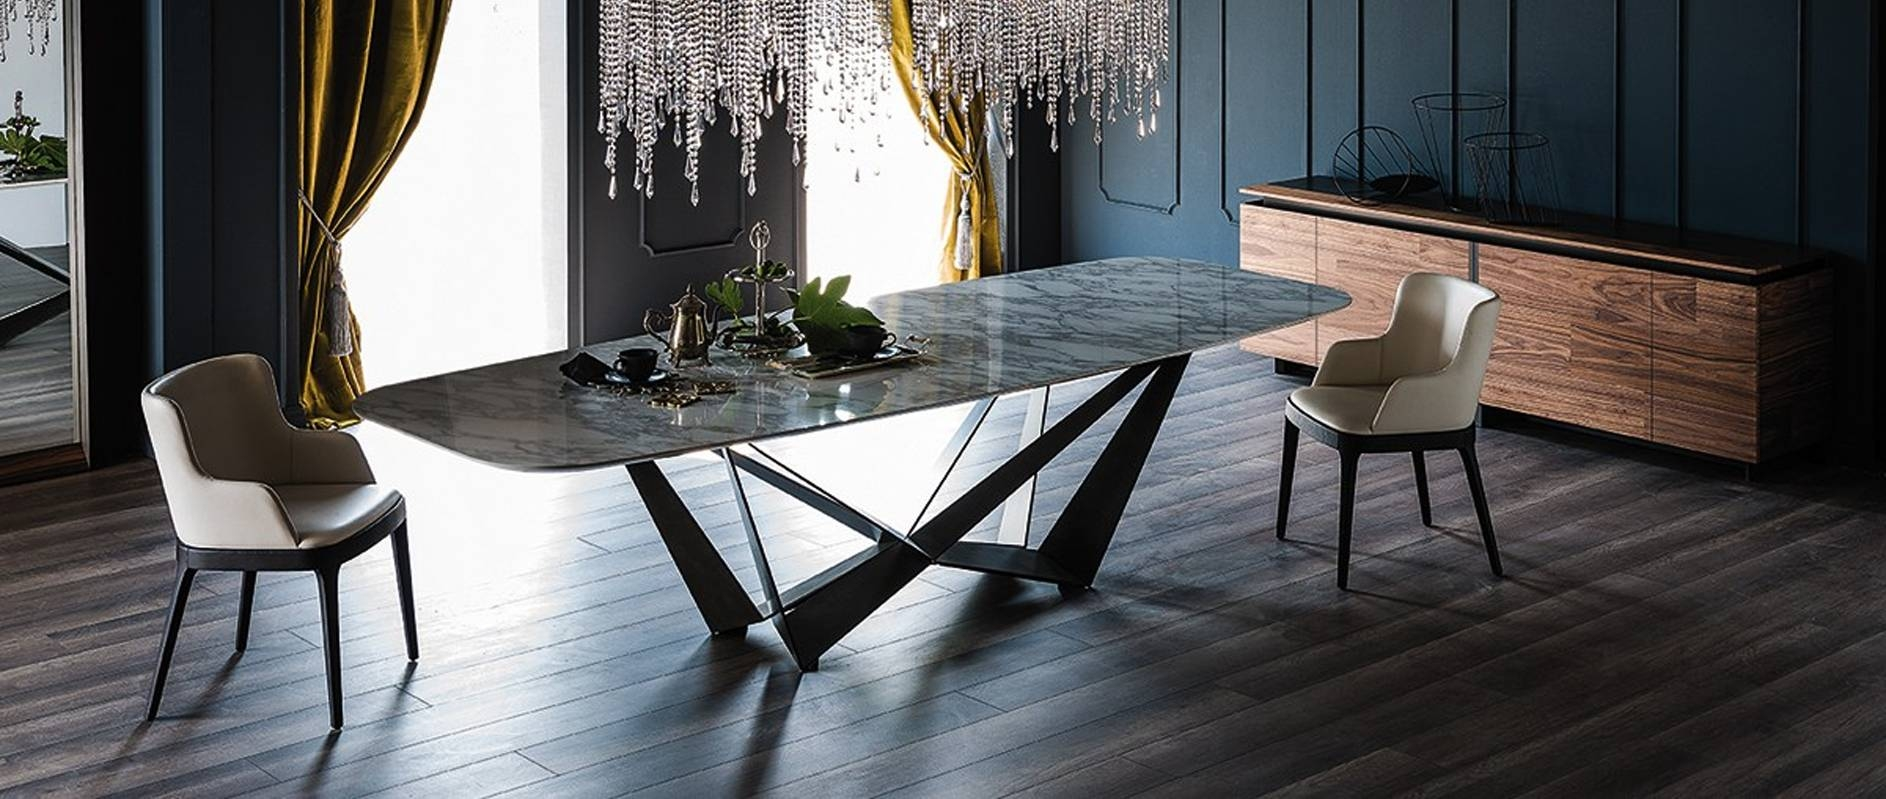 Modern Dining Room Furniture – Modern Dining Tables, Dining Chairs Within Newest Dining Room Table Chairs And Sideboards (#13 of 15)